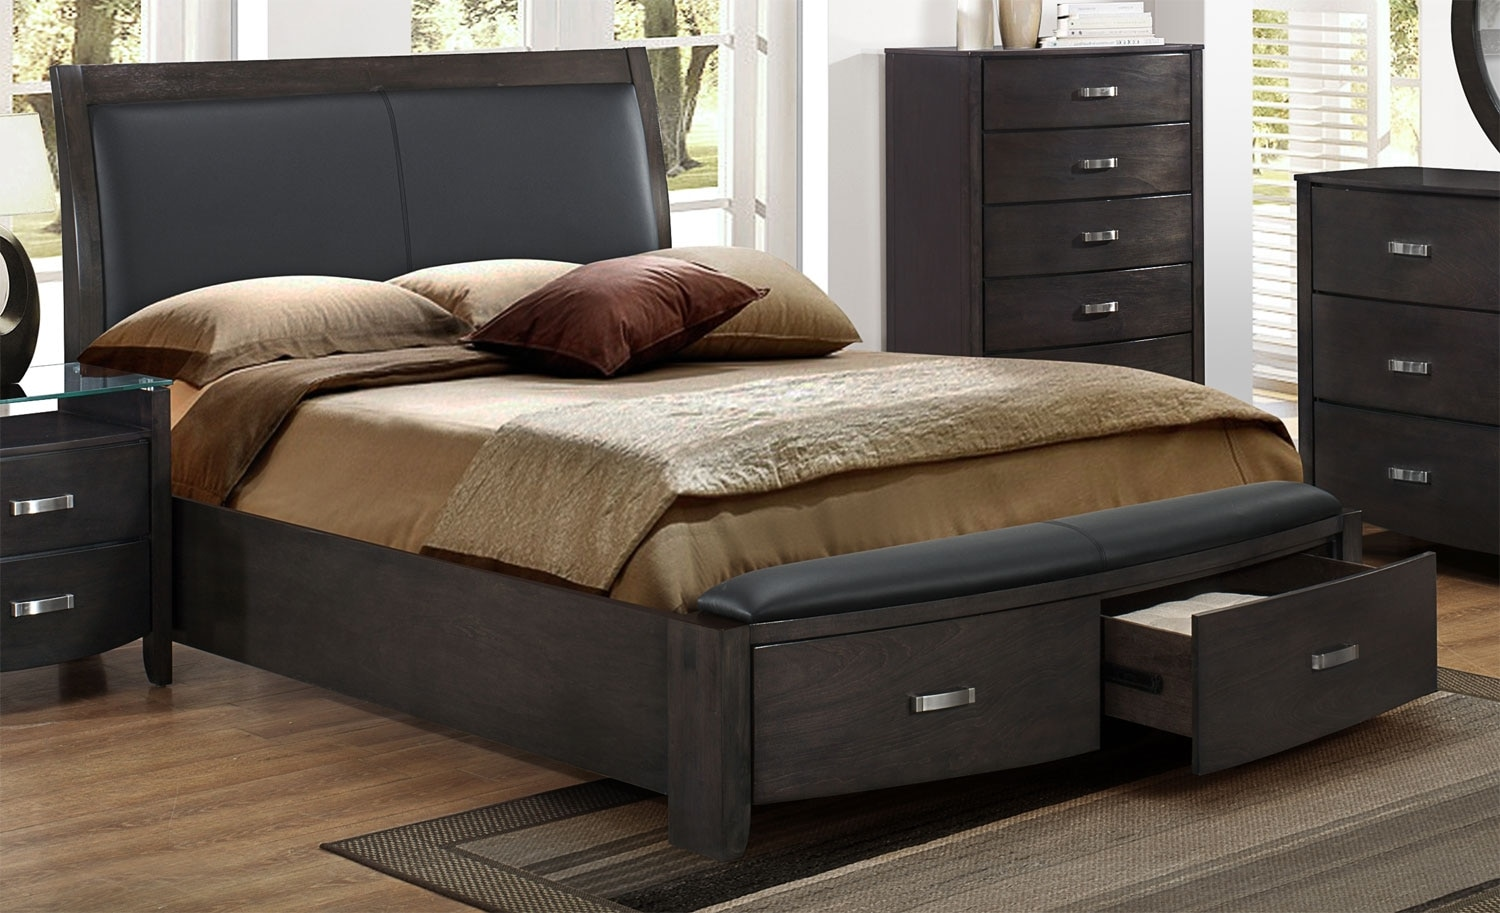 Cinema Queen Bed - Charcoal